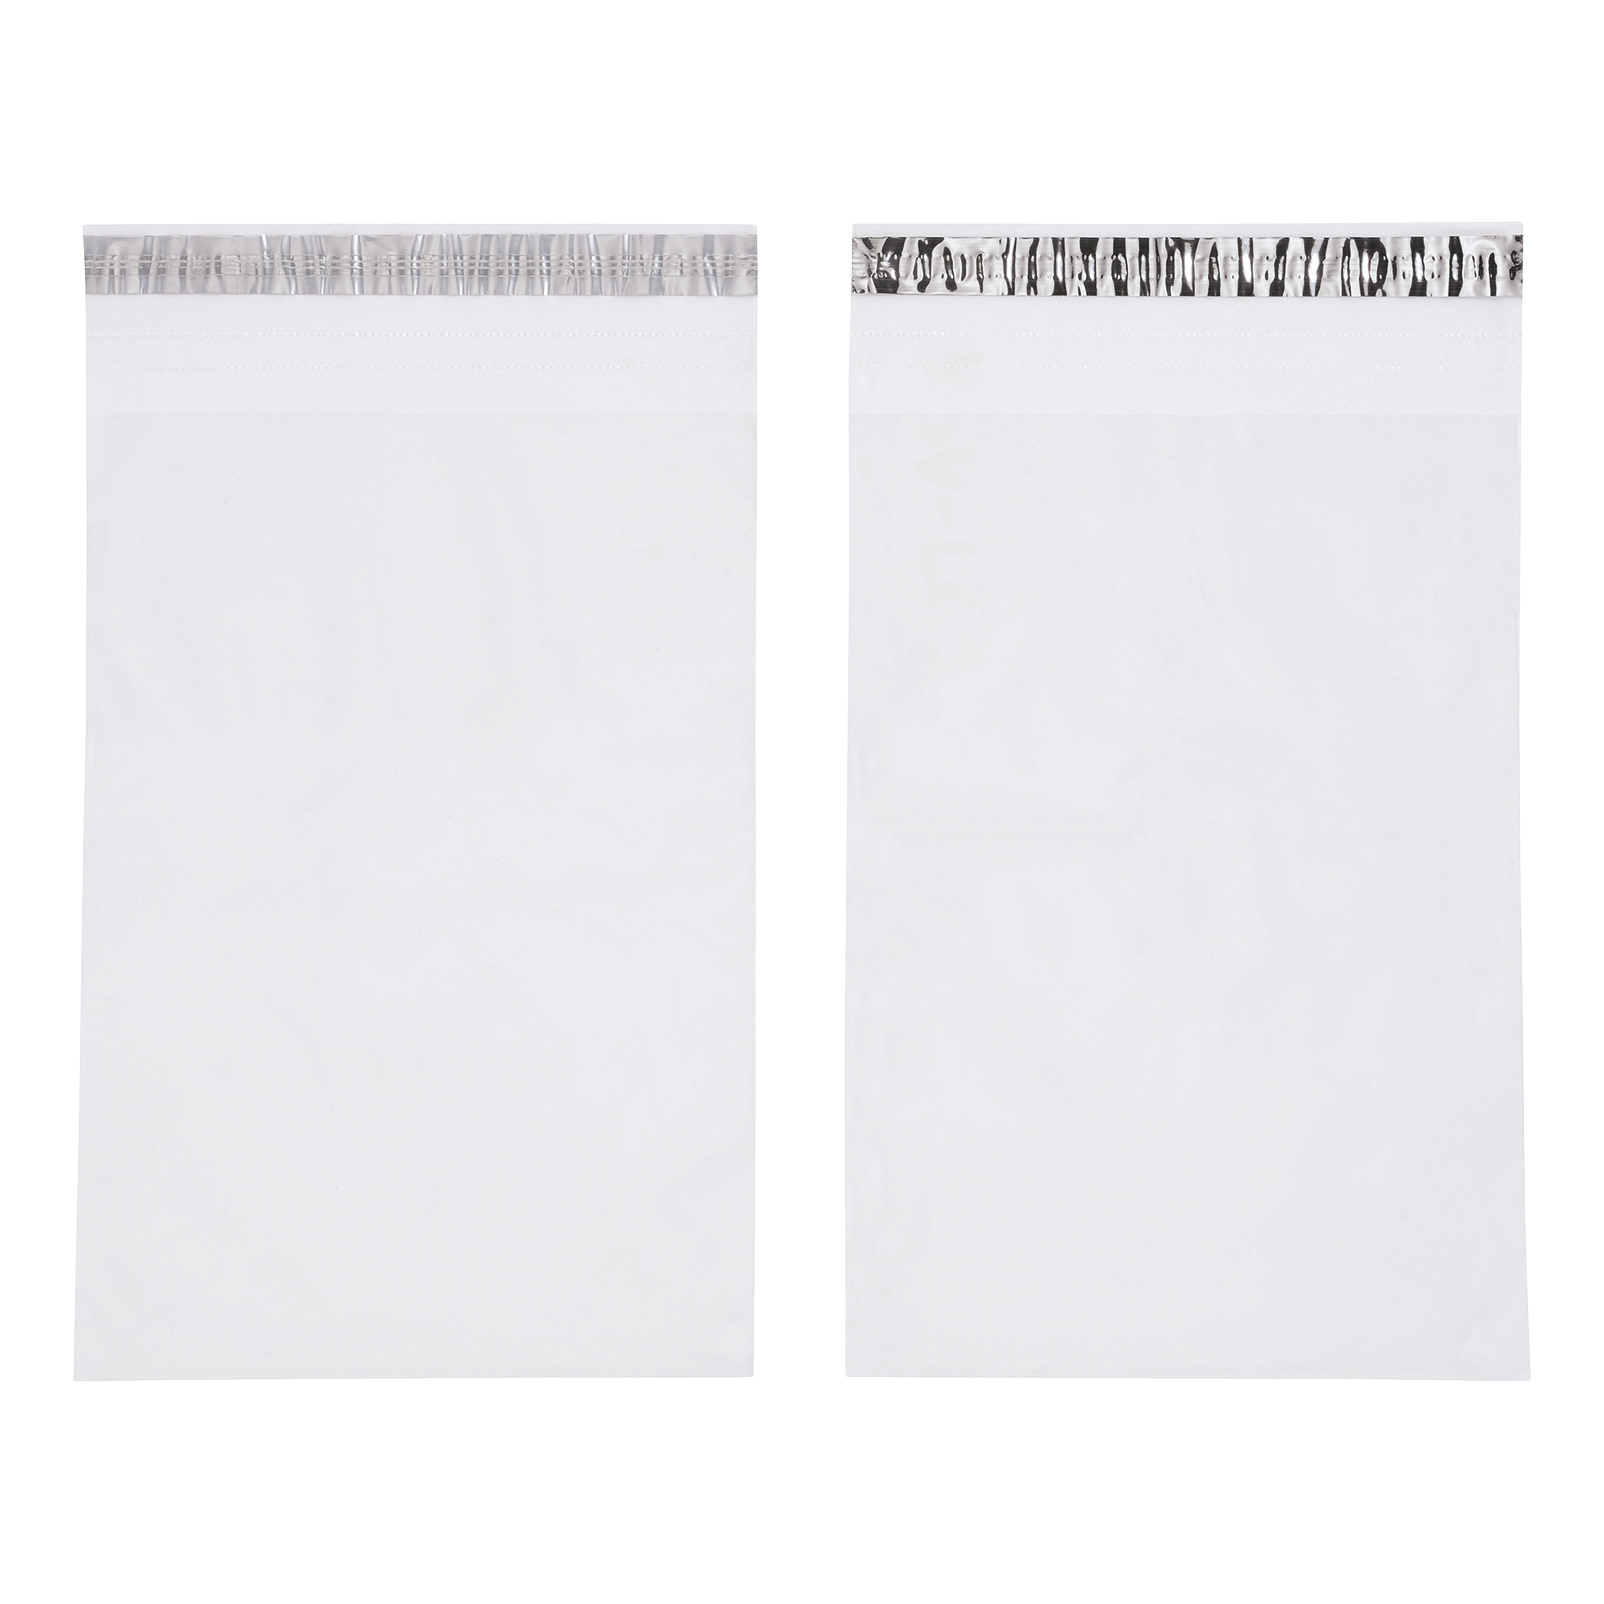 Keepsafe LightWeight Envelope Clear No Print C5 W162xH230mm Peel&Seal Ref KSV-LC1 Pack 100